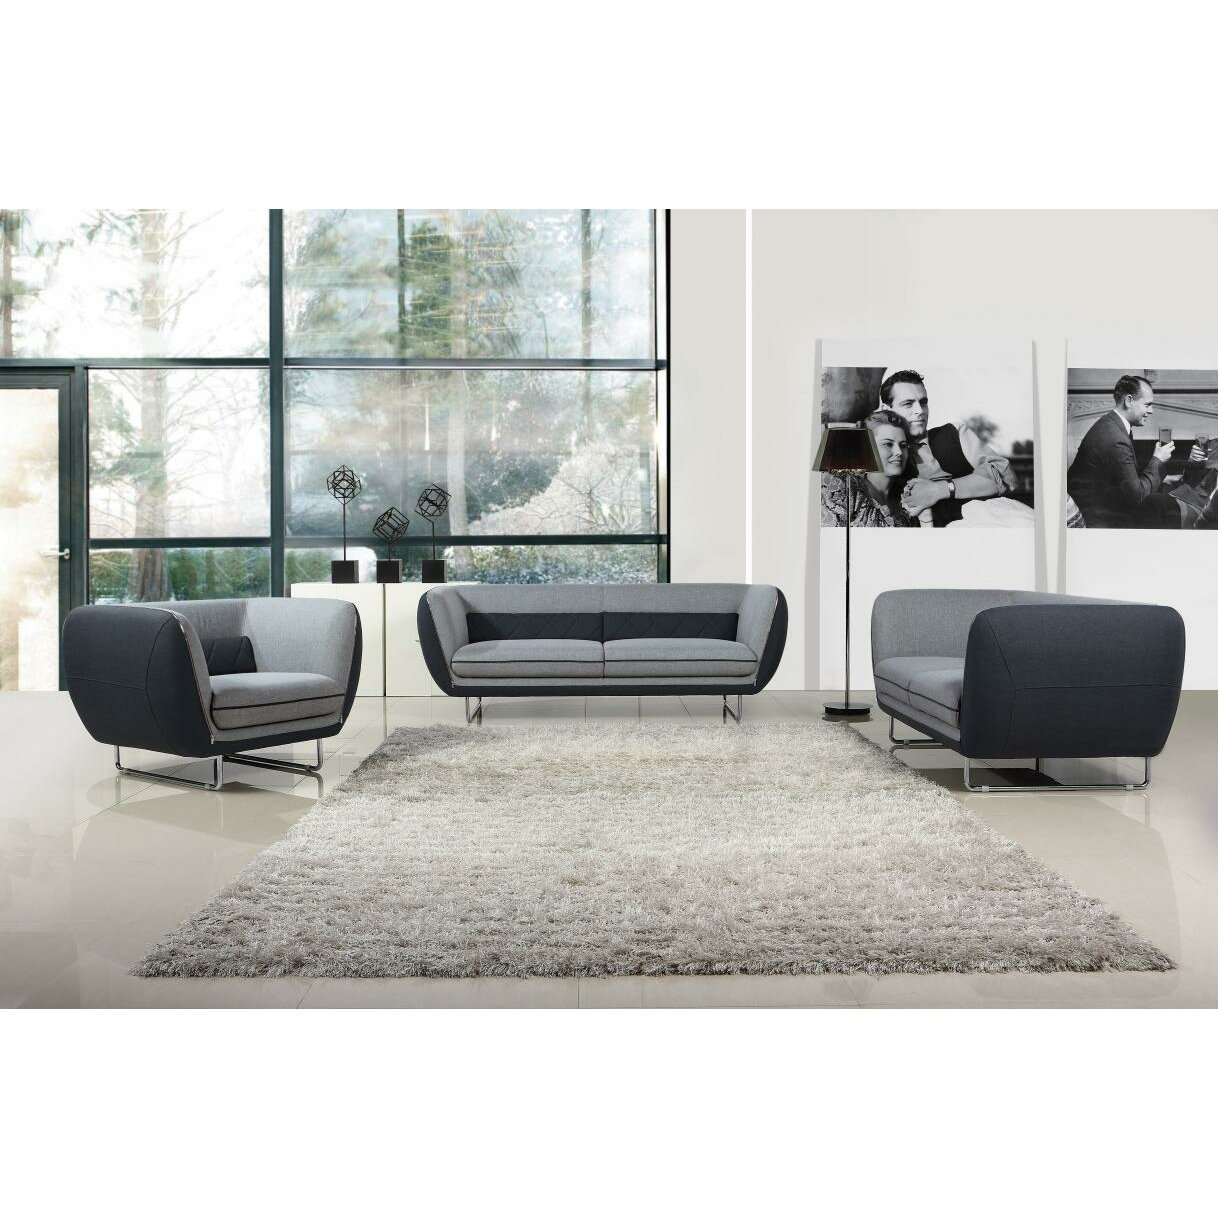 Vig furniture divani casa vietta modern living room set for The living room furniture